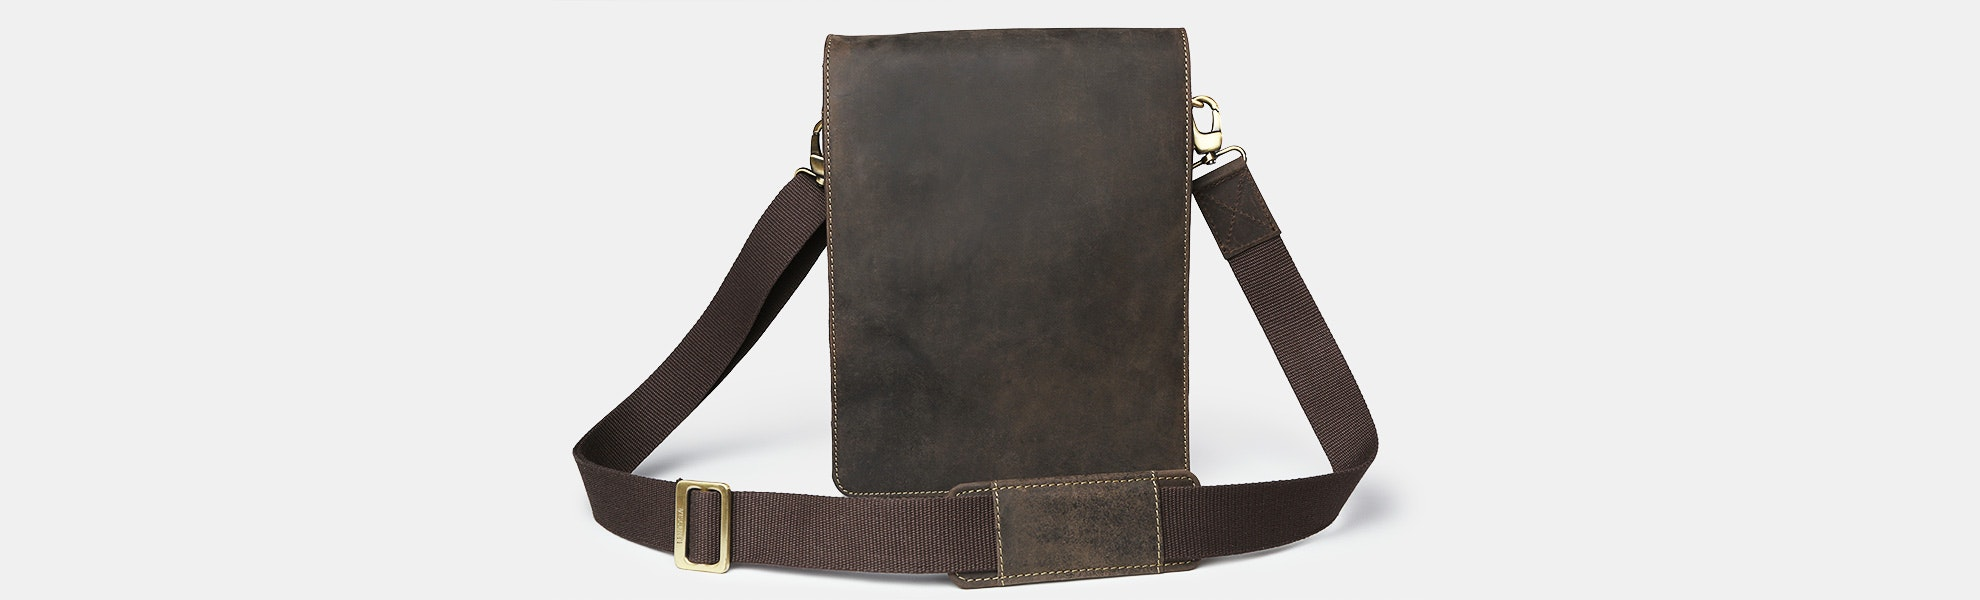 Visconti Leather Leo Messenger Bag